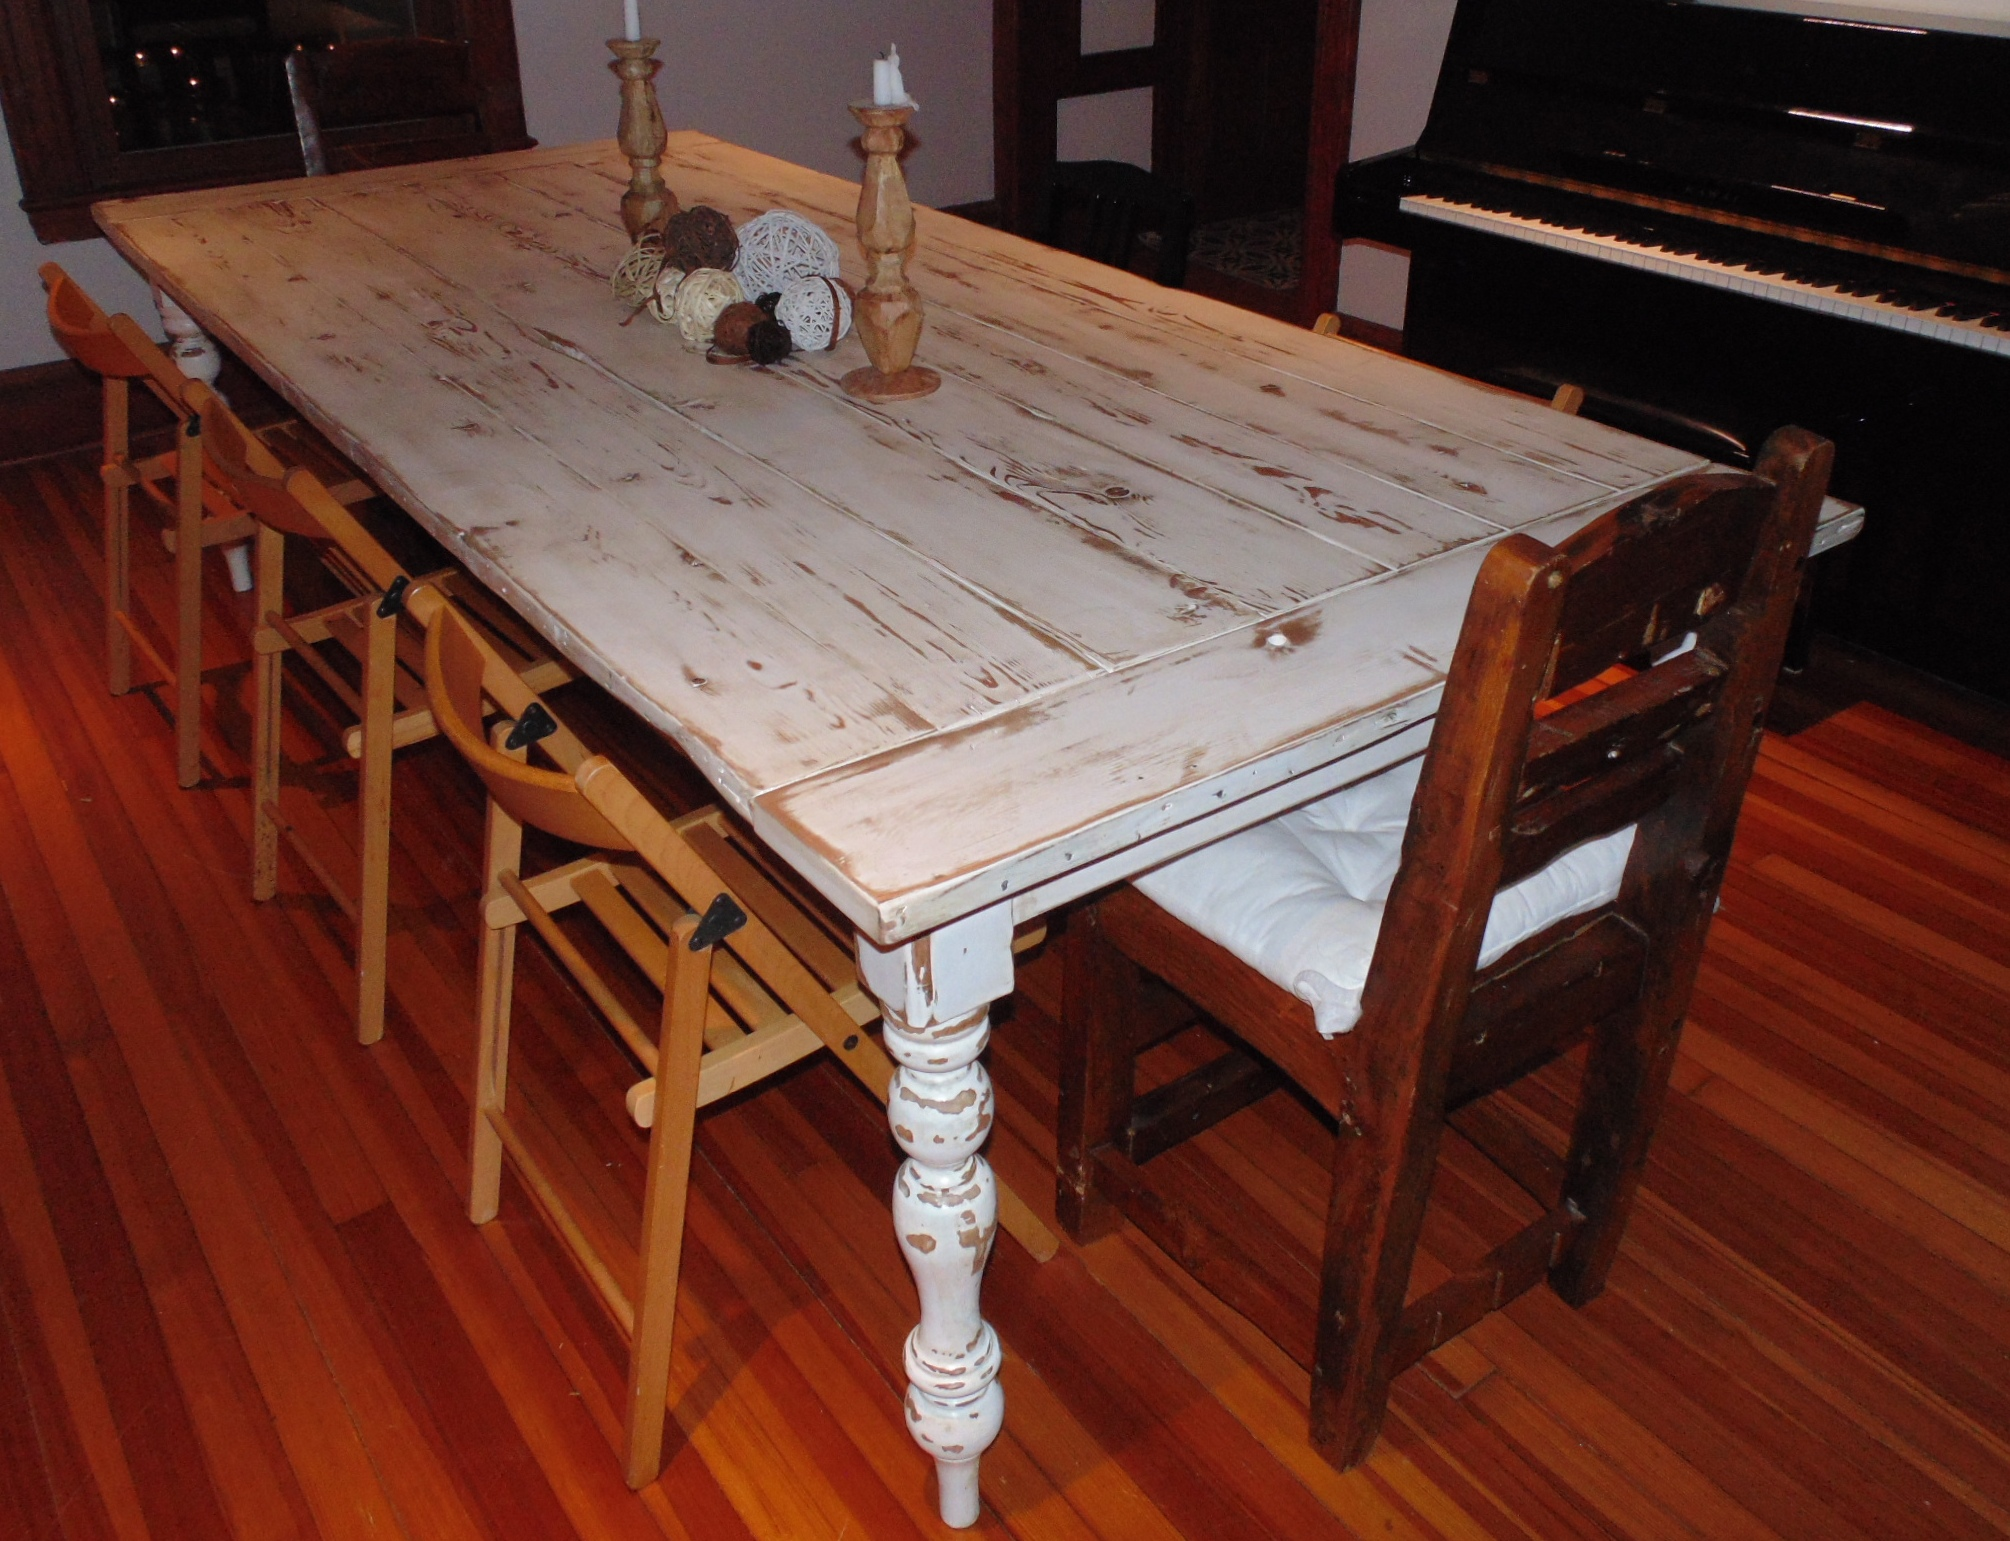 Ine Reclaimed Wood French Country Farmhouse Table. Reclaimed Wood Farm Table   Table Designs